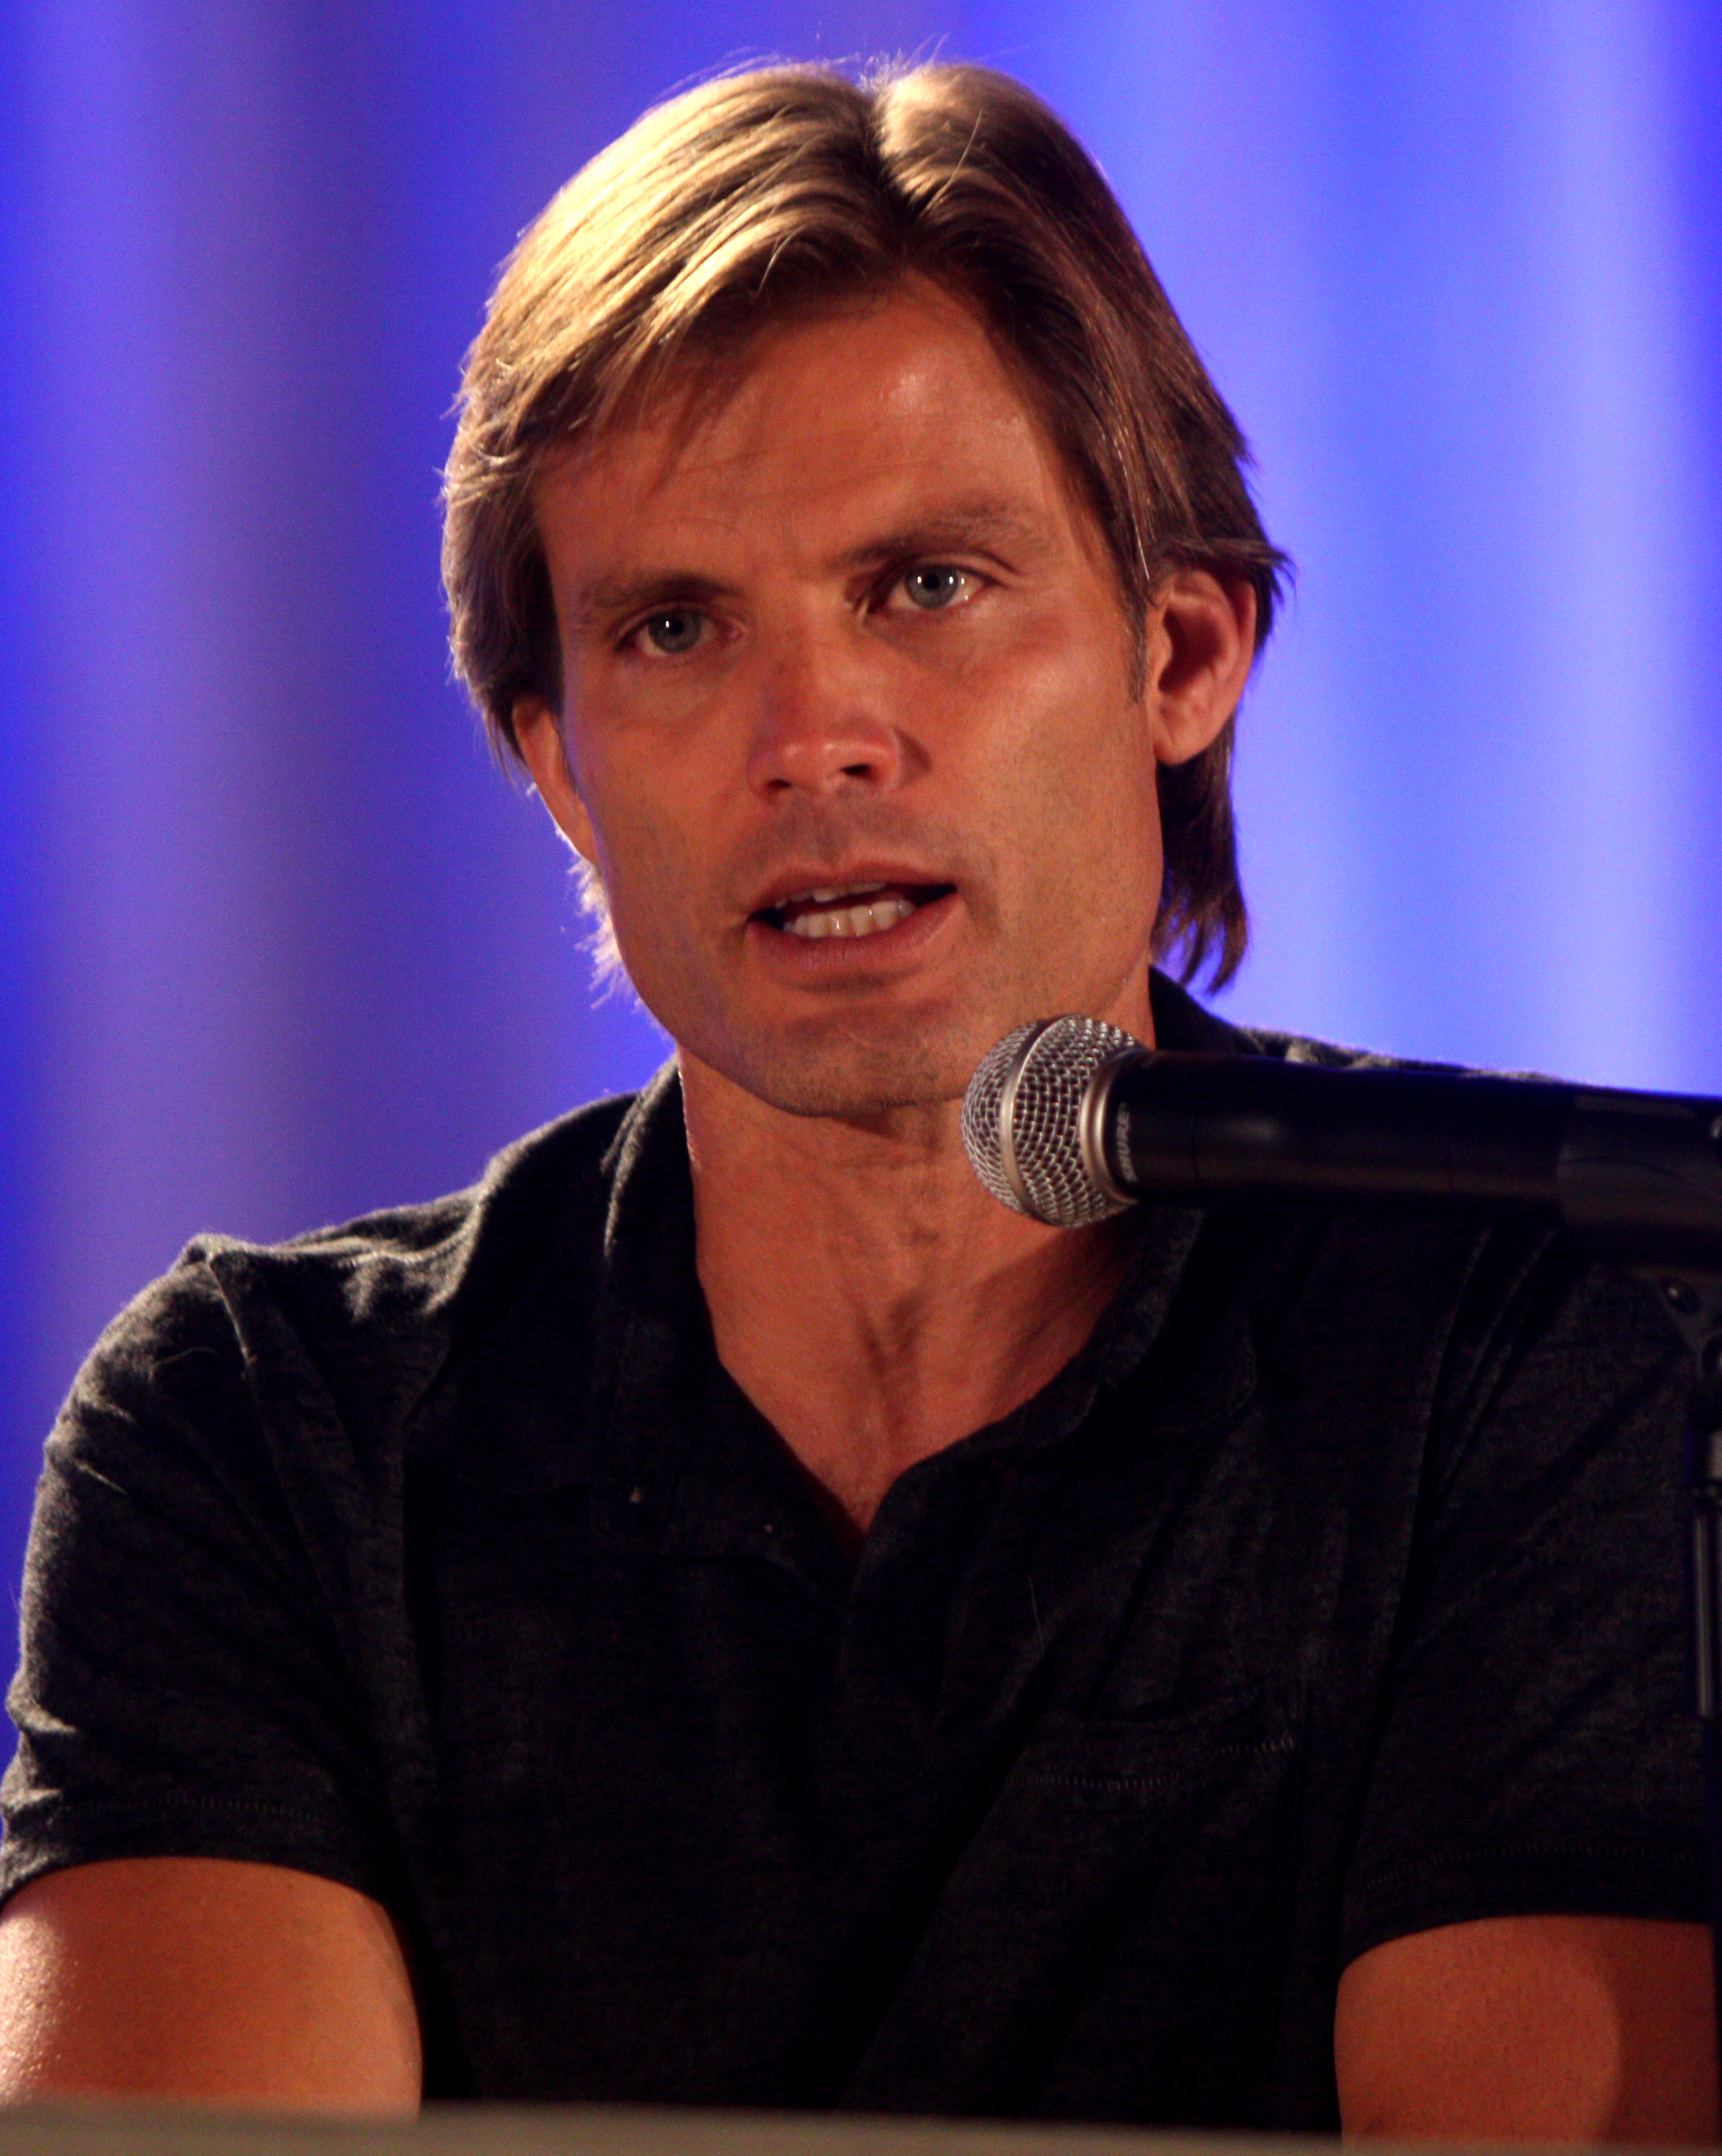 The 49-year old son of father Casper Robert Van Dien, Sr. and mother Diane Morrow Casper Van Dien in 2018 photo. Casper Van Dien earned a  million dollar salary - leaving the net worth at 6 million in 2018